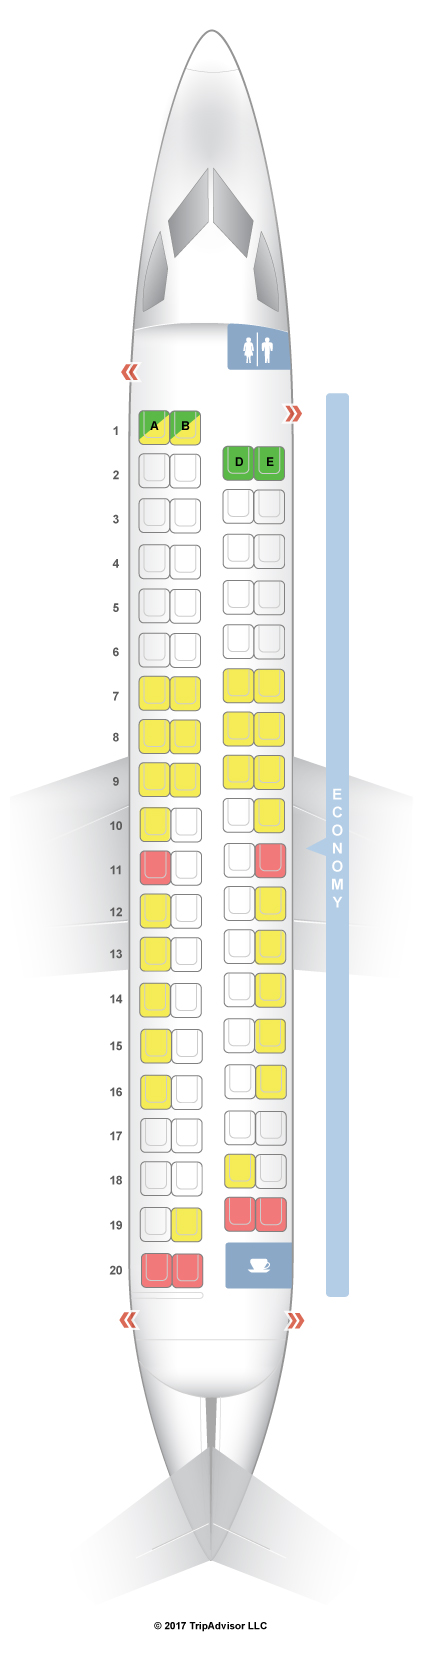 Seatguru Seat Map Alaska Airlines Bombardier Q400